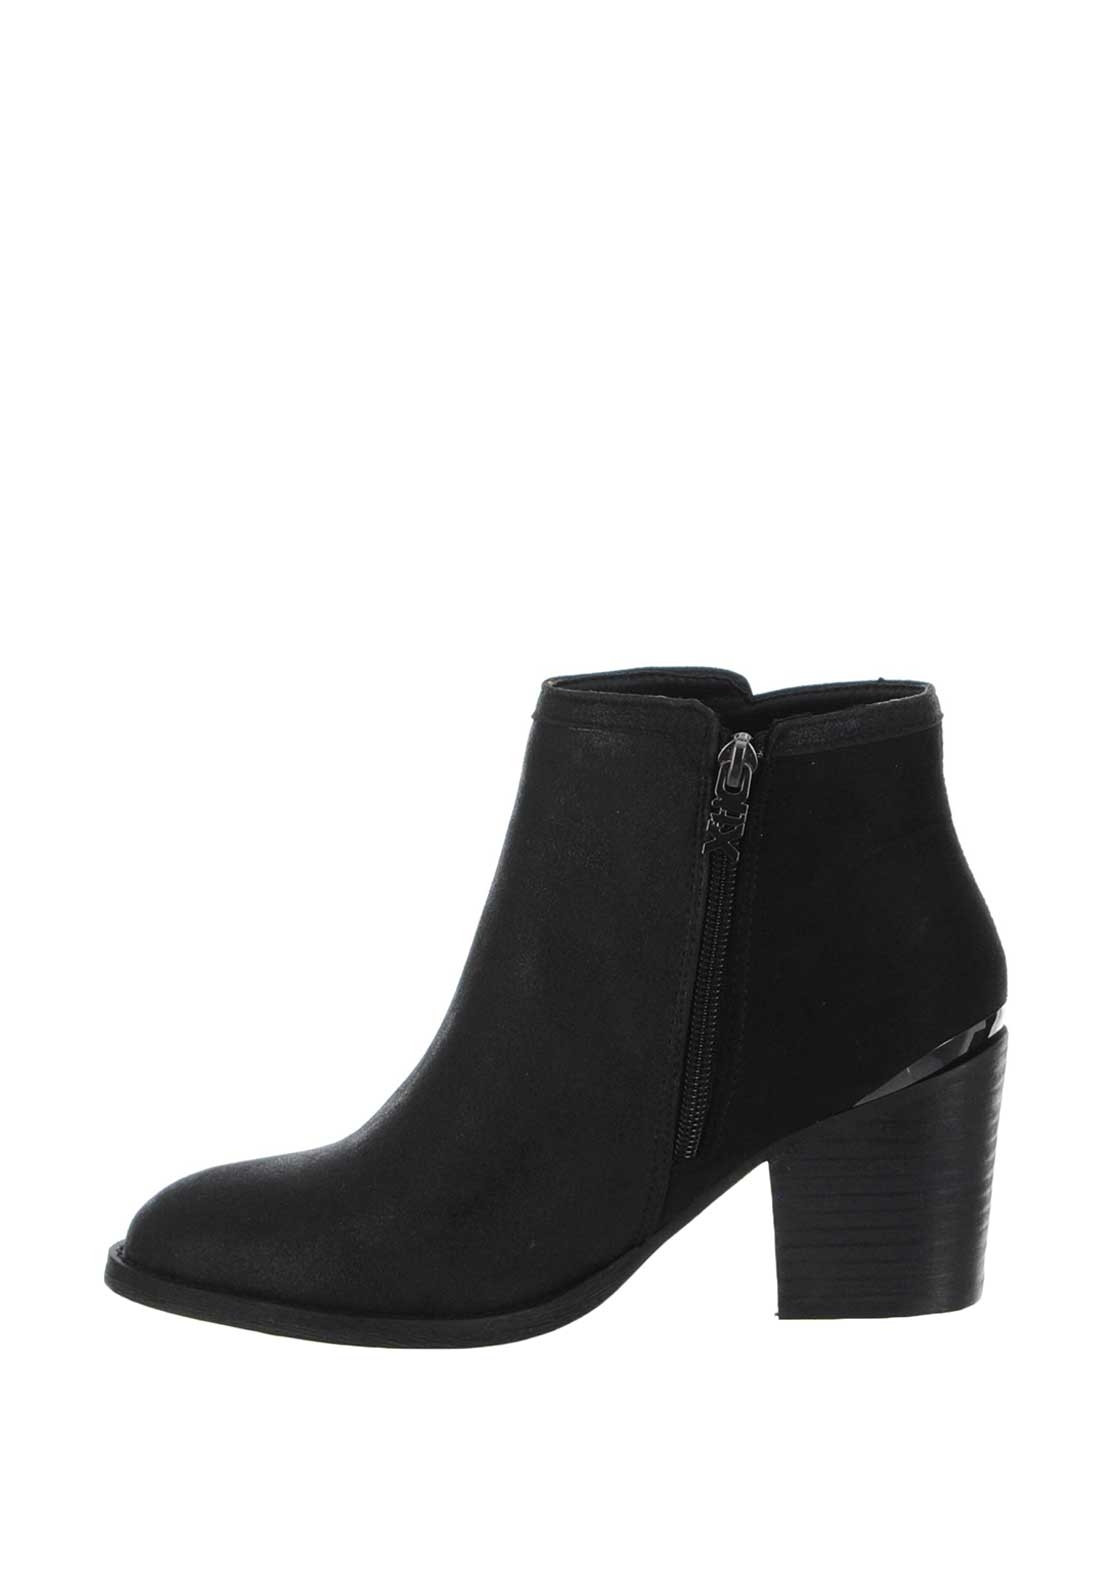 d096106c9cd0b Xti Womens Gem Block Heel Ankle Boots, Black | McElhinneys